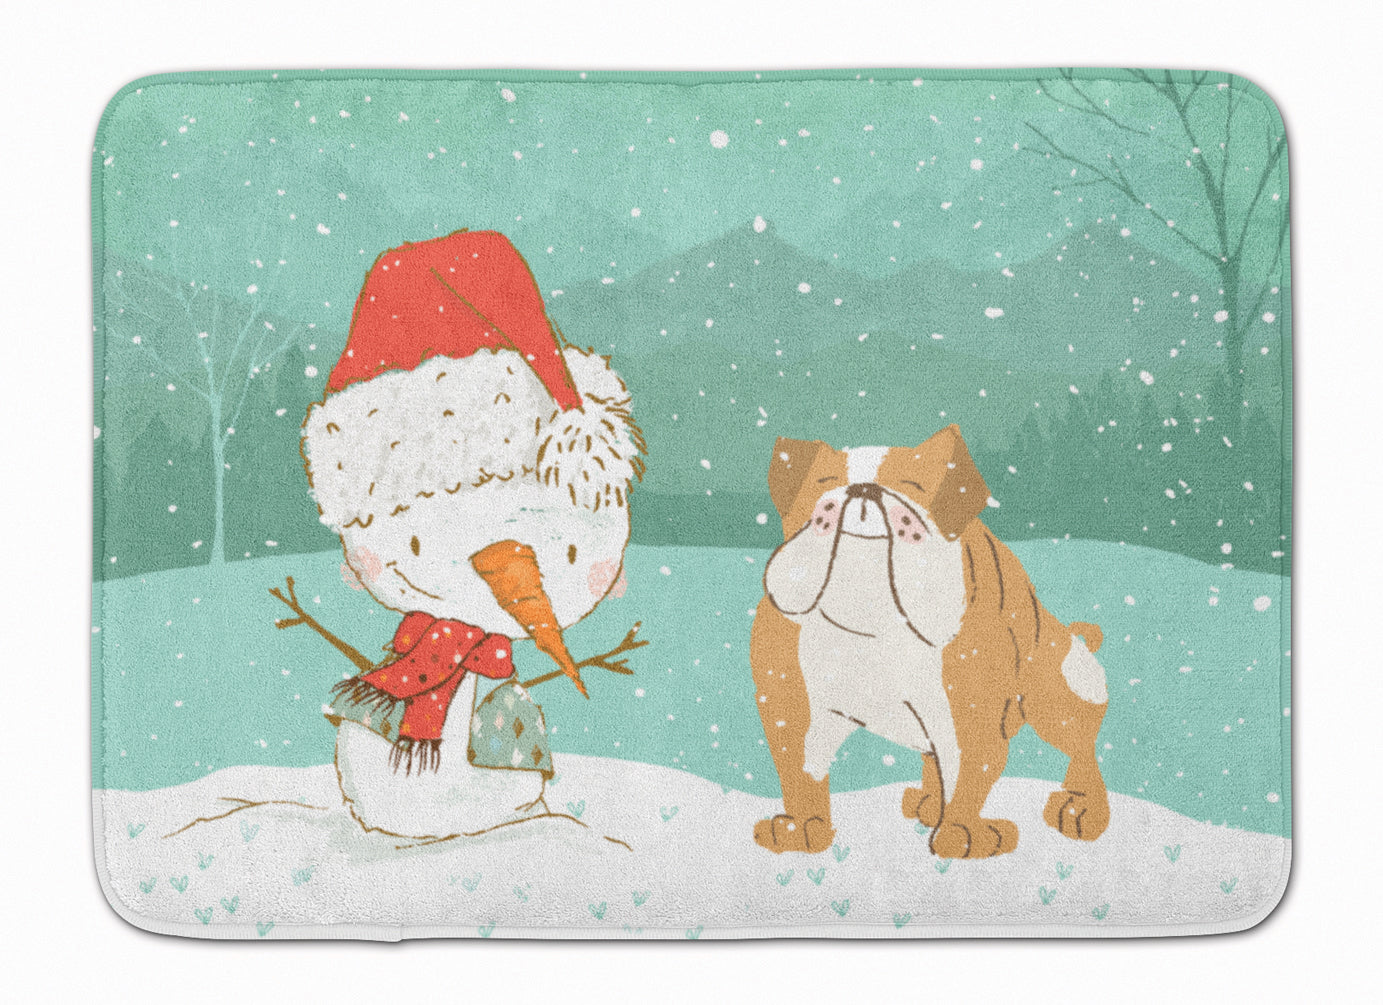 English Bulldog Snowman Christmas Machine Washable Memory Foam Mat CK2053RUG by Caroline's Treasures